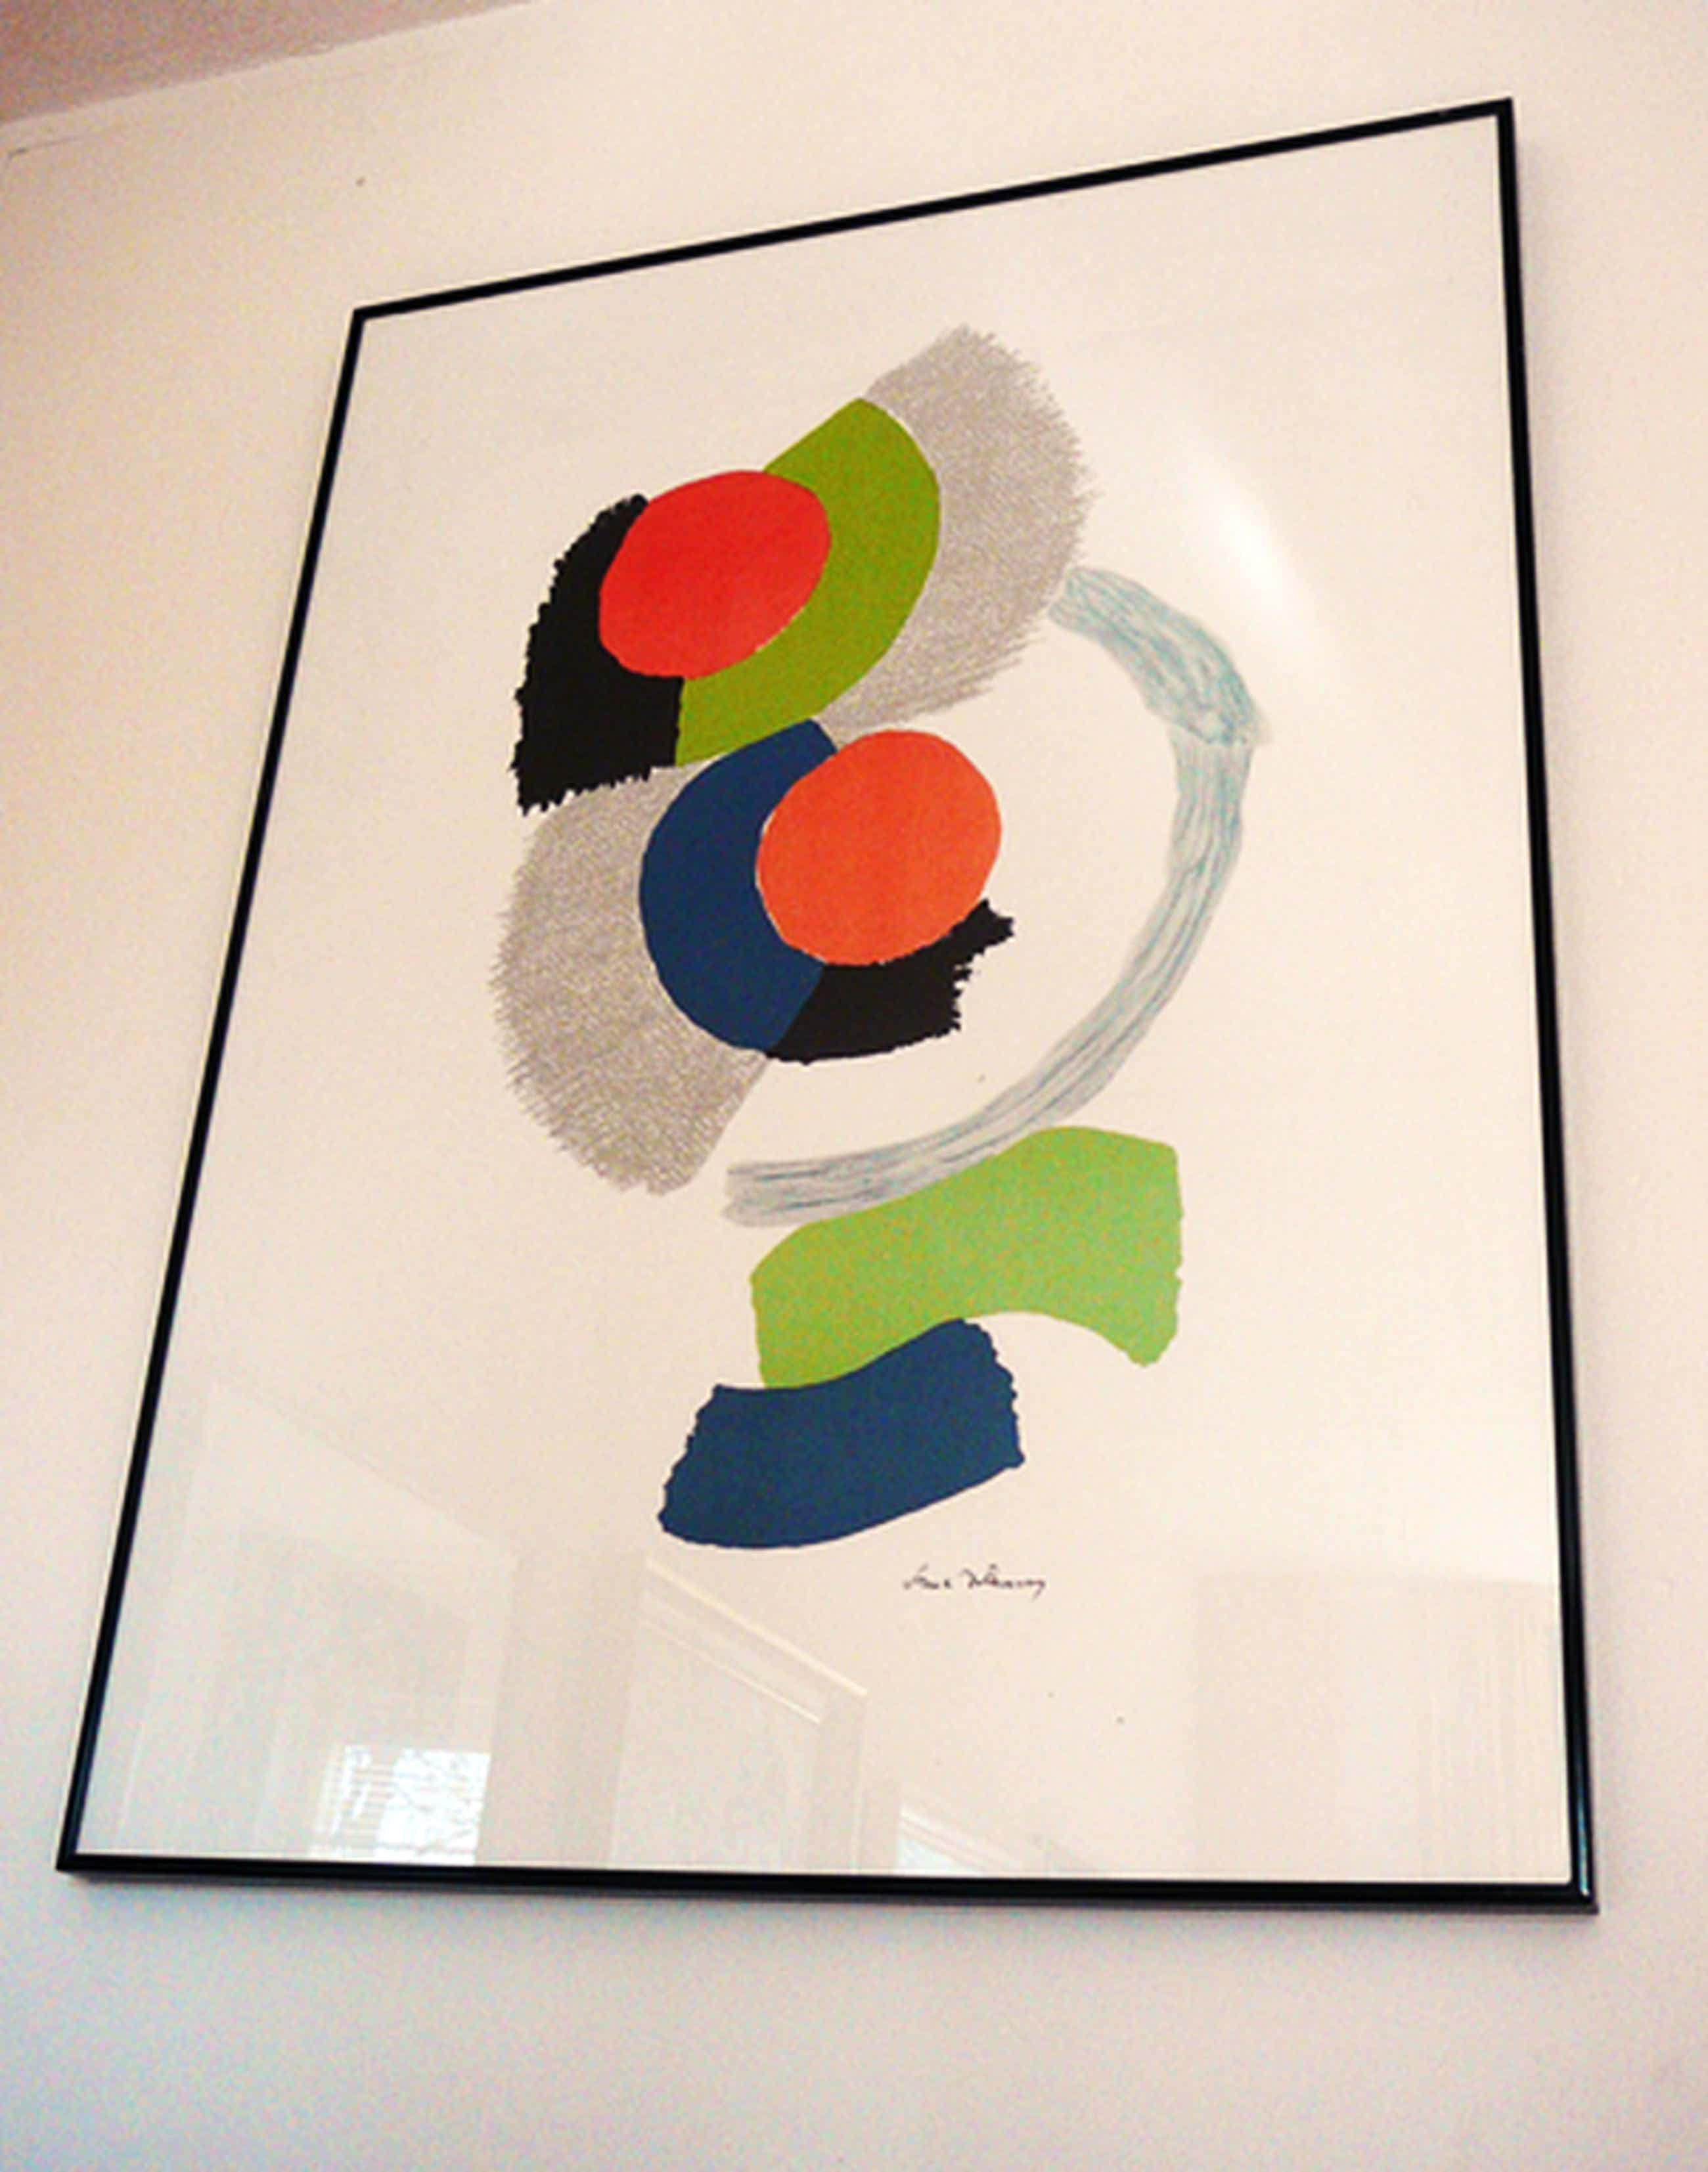 Sonia Delaunay: Coccinelle 1974 -offsetlithografie-  kopen? Bied vanaf 110!